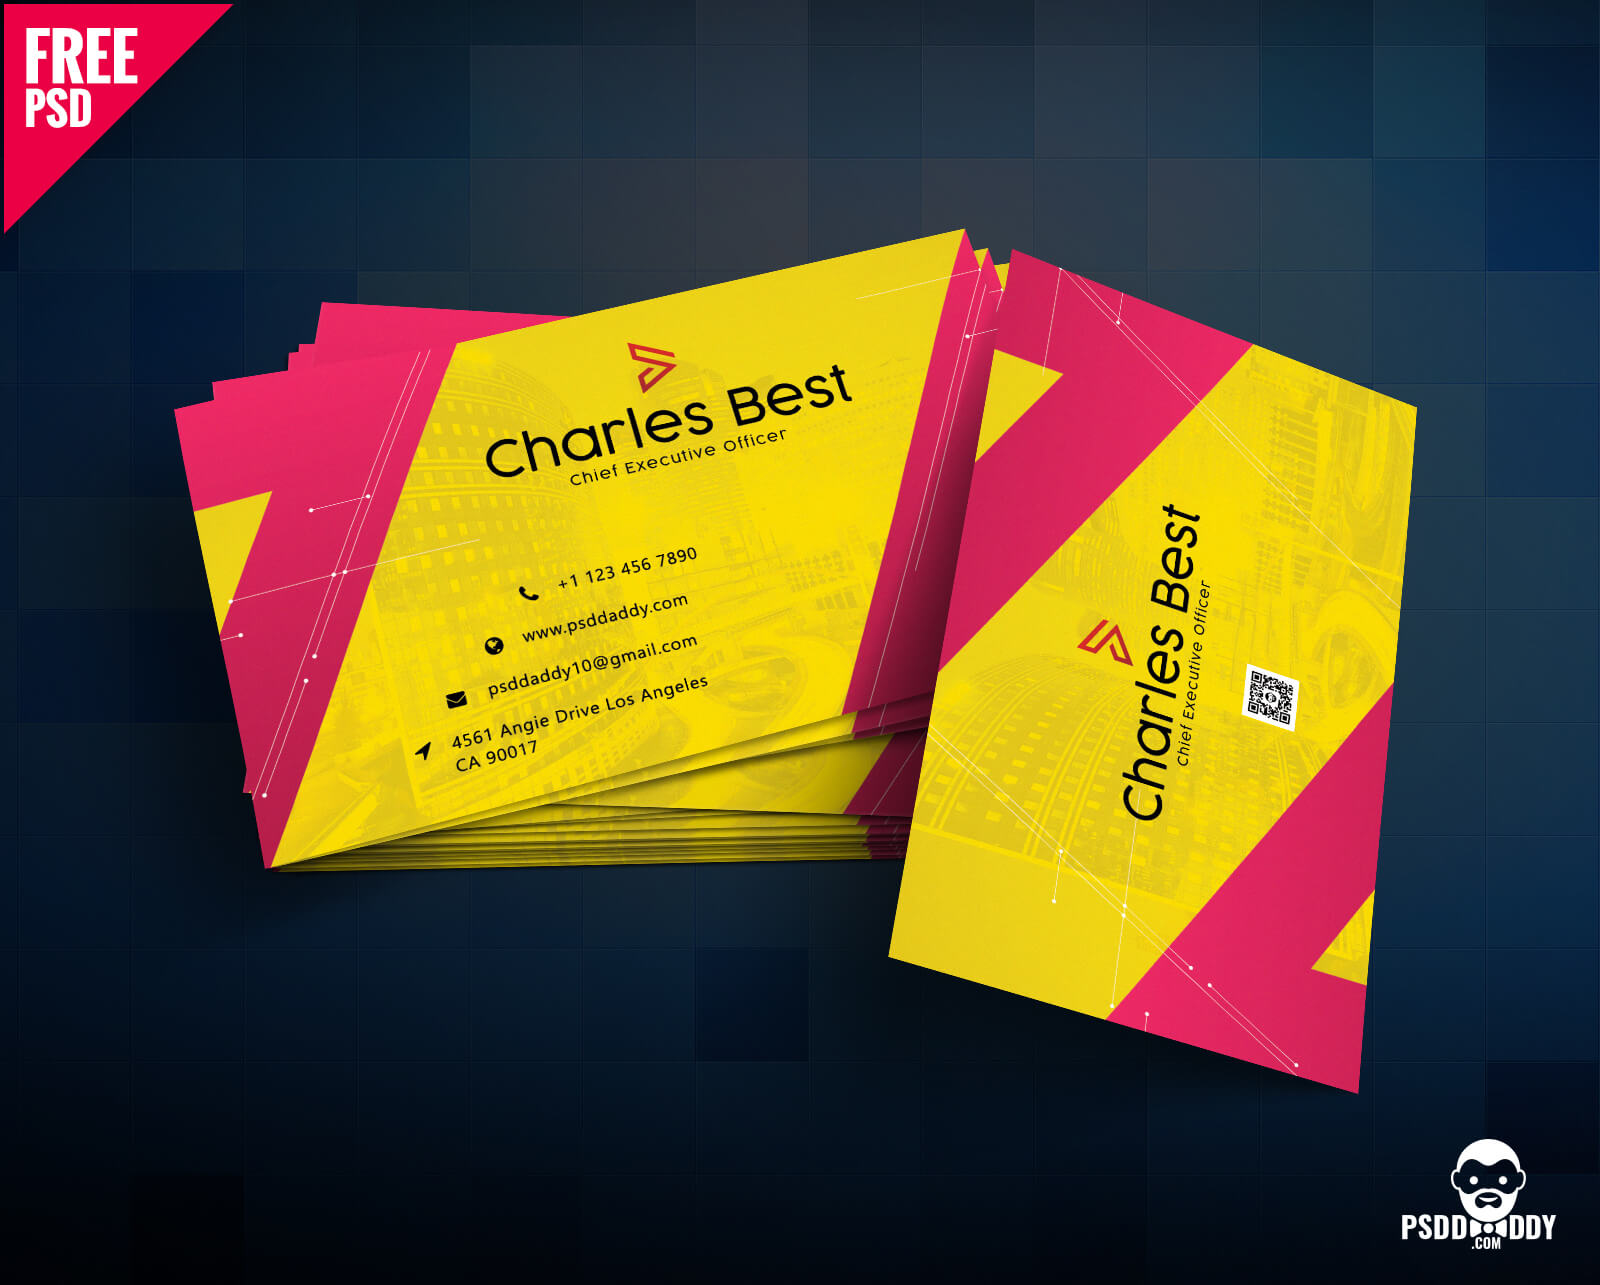 Download] Creative Business Card Free Psd | Psddaddy Regarding Free Business Card Templates In Psd Format